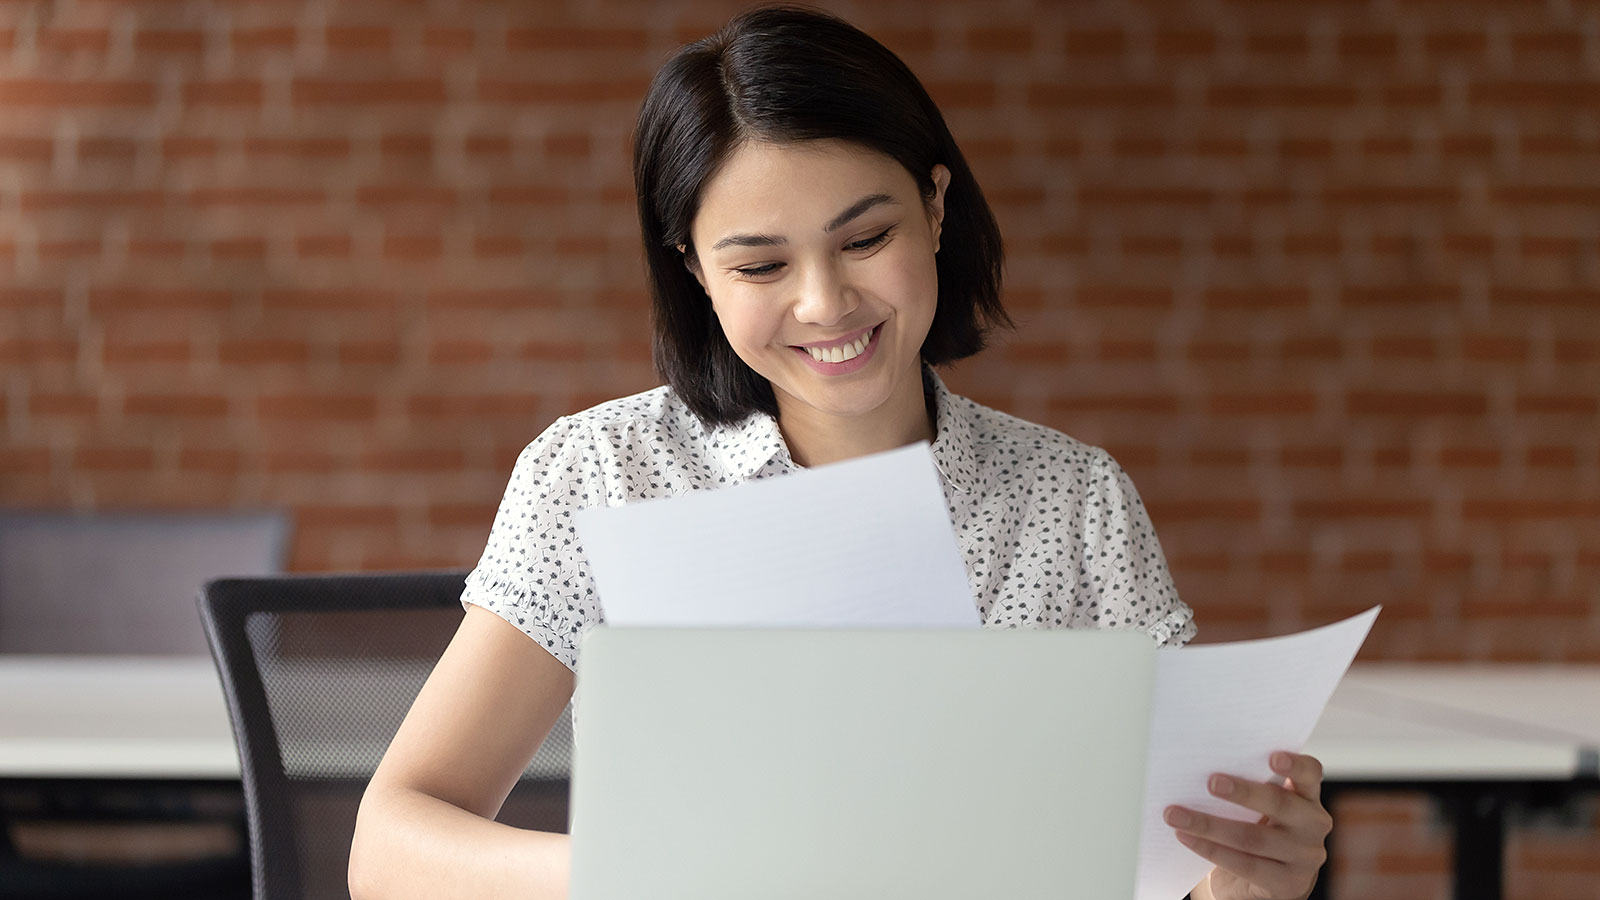 The most important part of your resume is also the most likely to be left out — Here's what it is